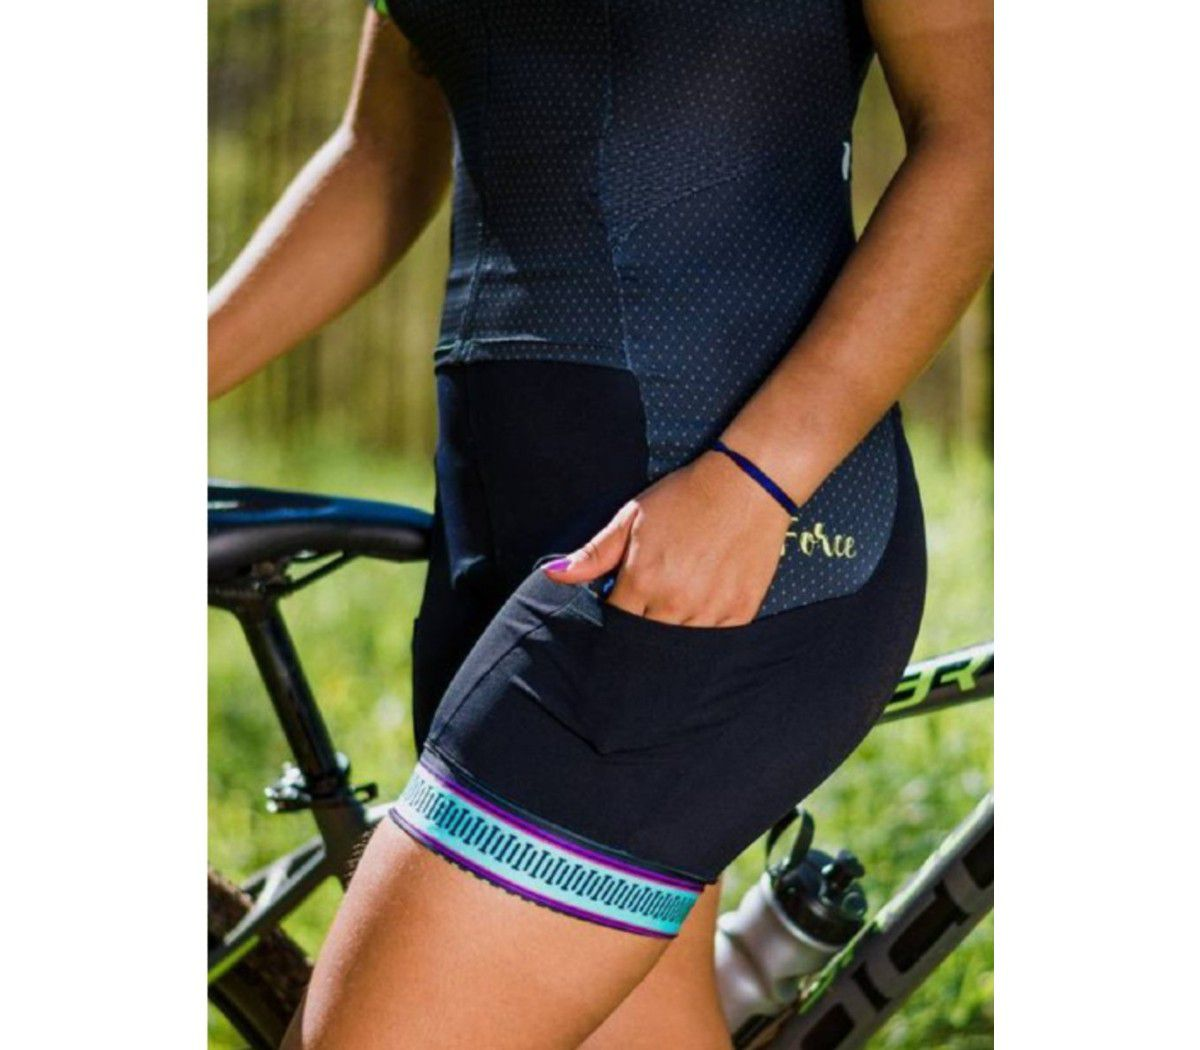 MACAQUINHO FREEFORCE FEMININO NEW WIRE PRETO CINZA COLORS CICLISMO